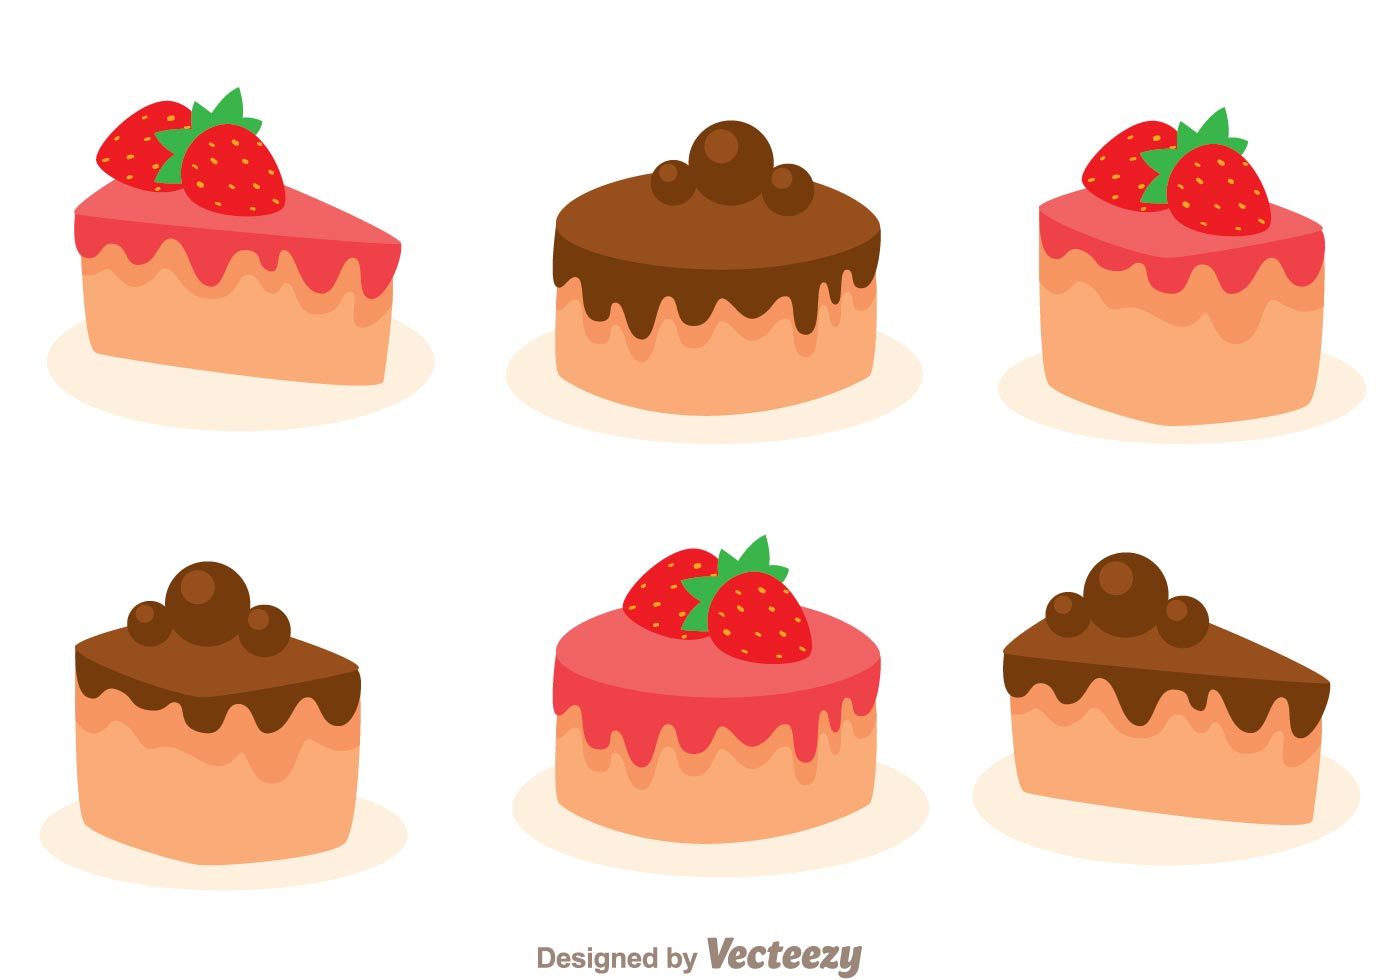 hight resolution of stawberry and choco cake slice download free vector art stock graphics images